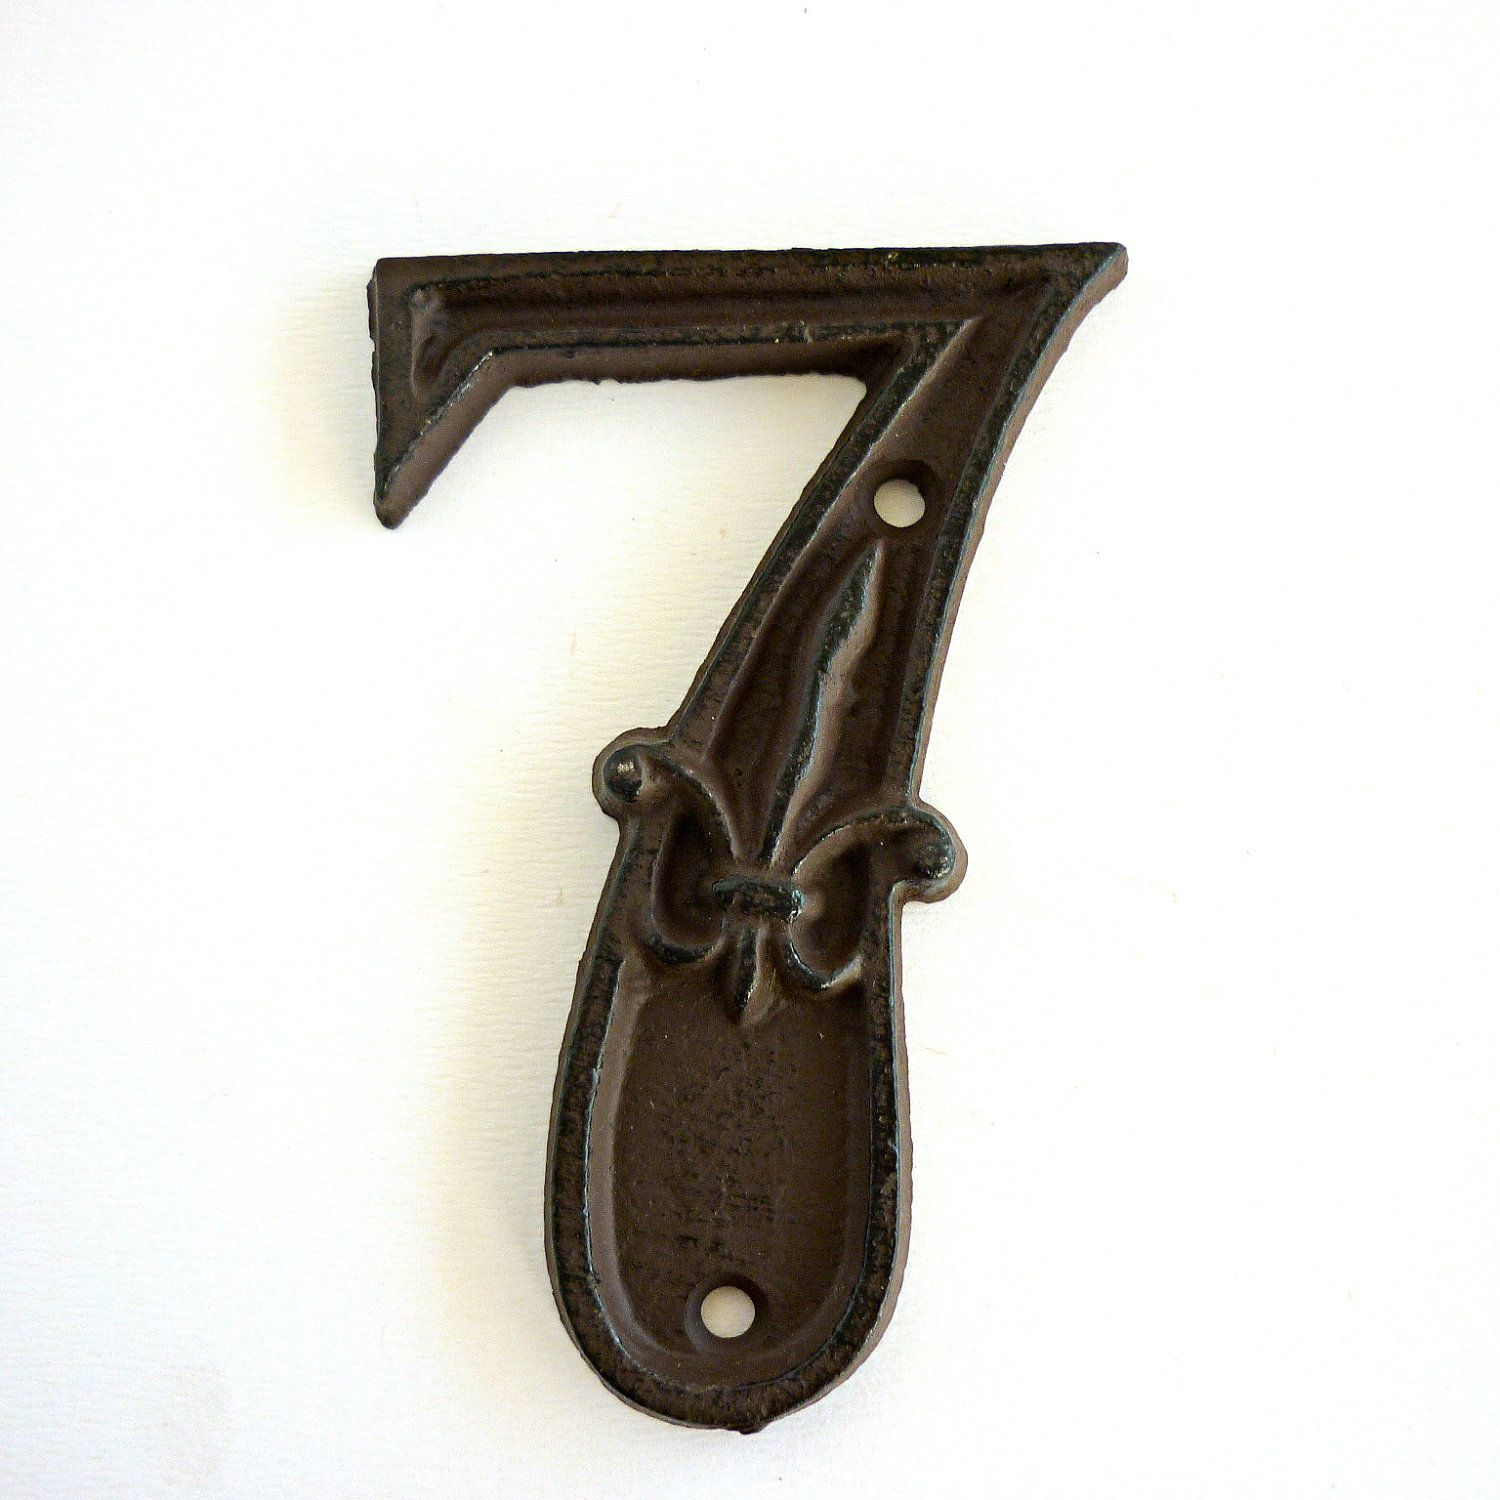 Vintage Number 7 Cast Iron! Super Cute I Need This For Our House Numbers!